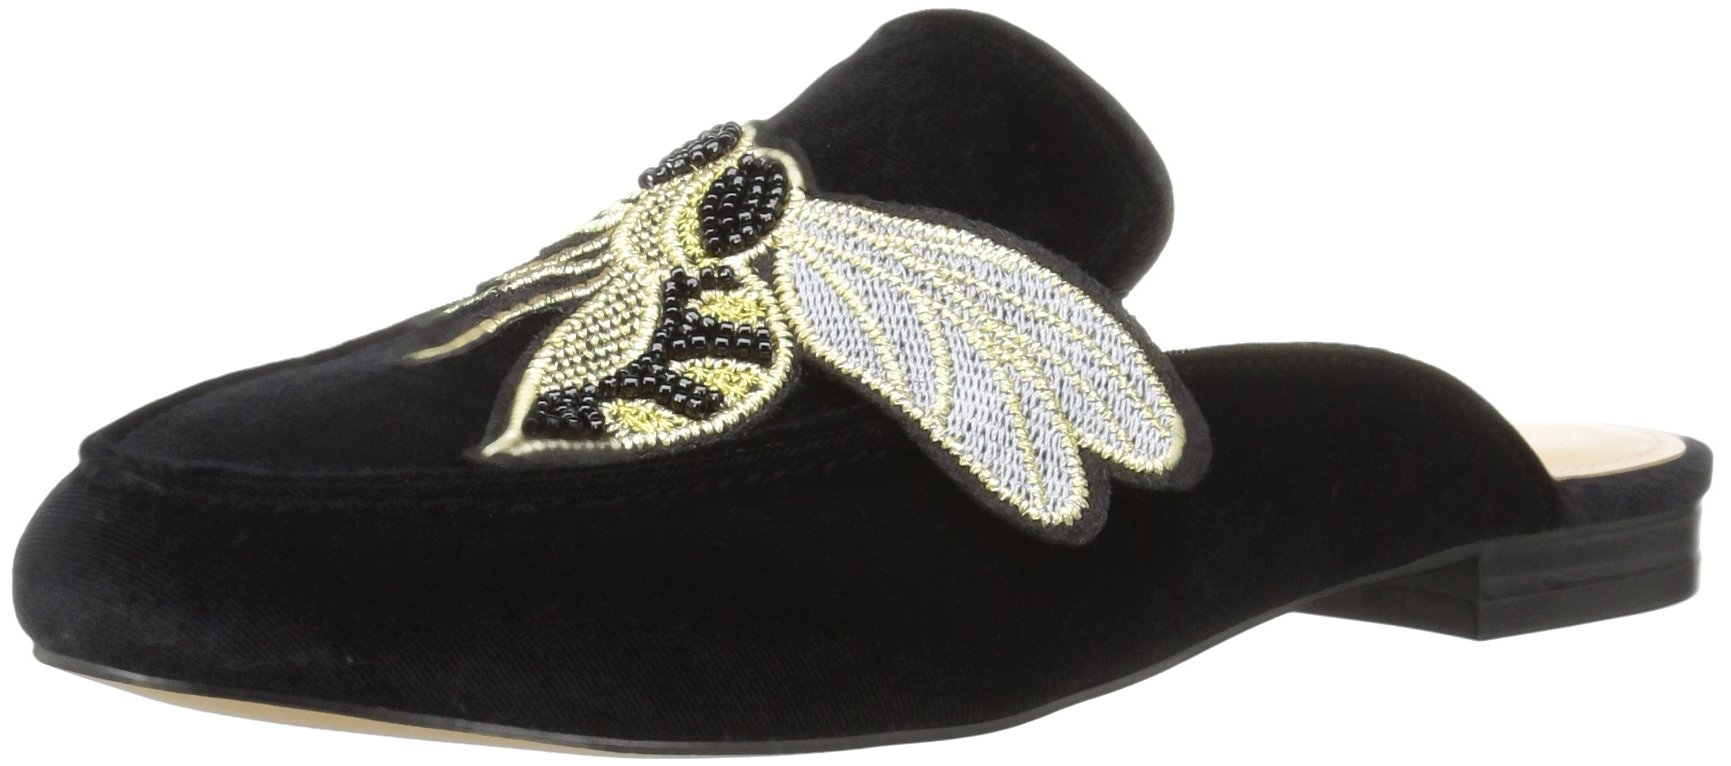 The Fix Women's Fay Embellished Slide Smoking Loafer, Black/Bumblebee Patch, 6 M Us